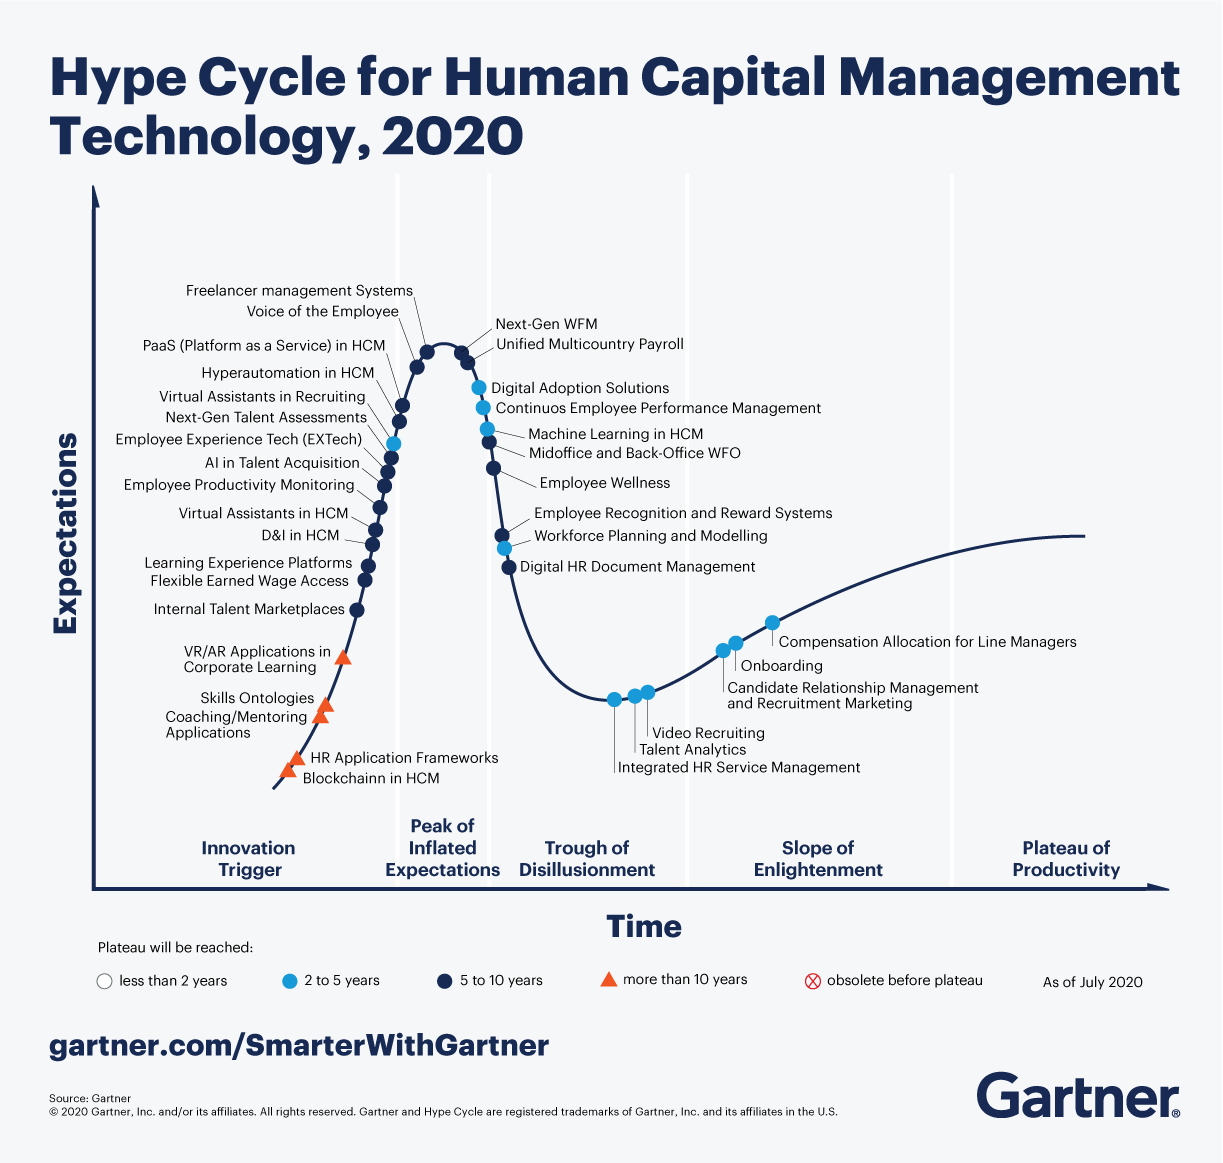 The Gartner Hype Cycle for Human Capital Management Technology, 2020